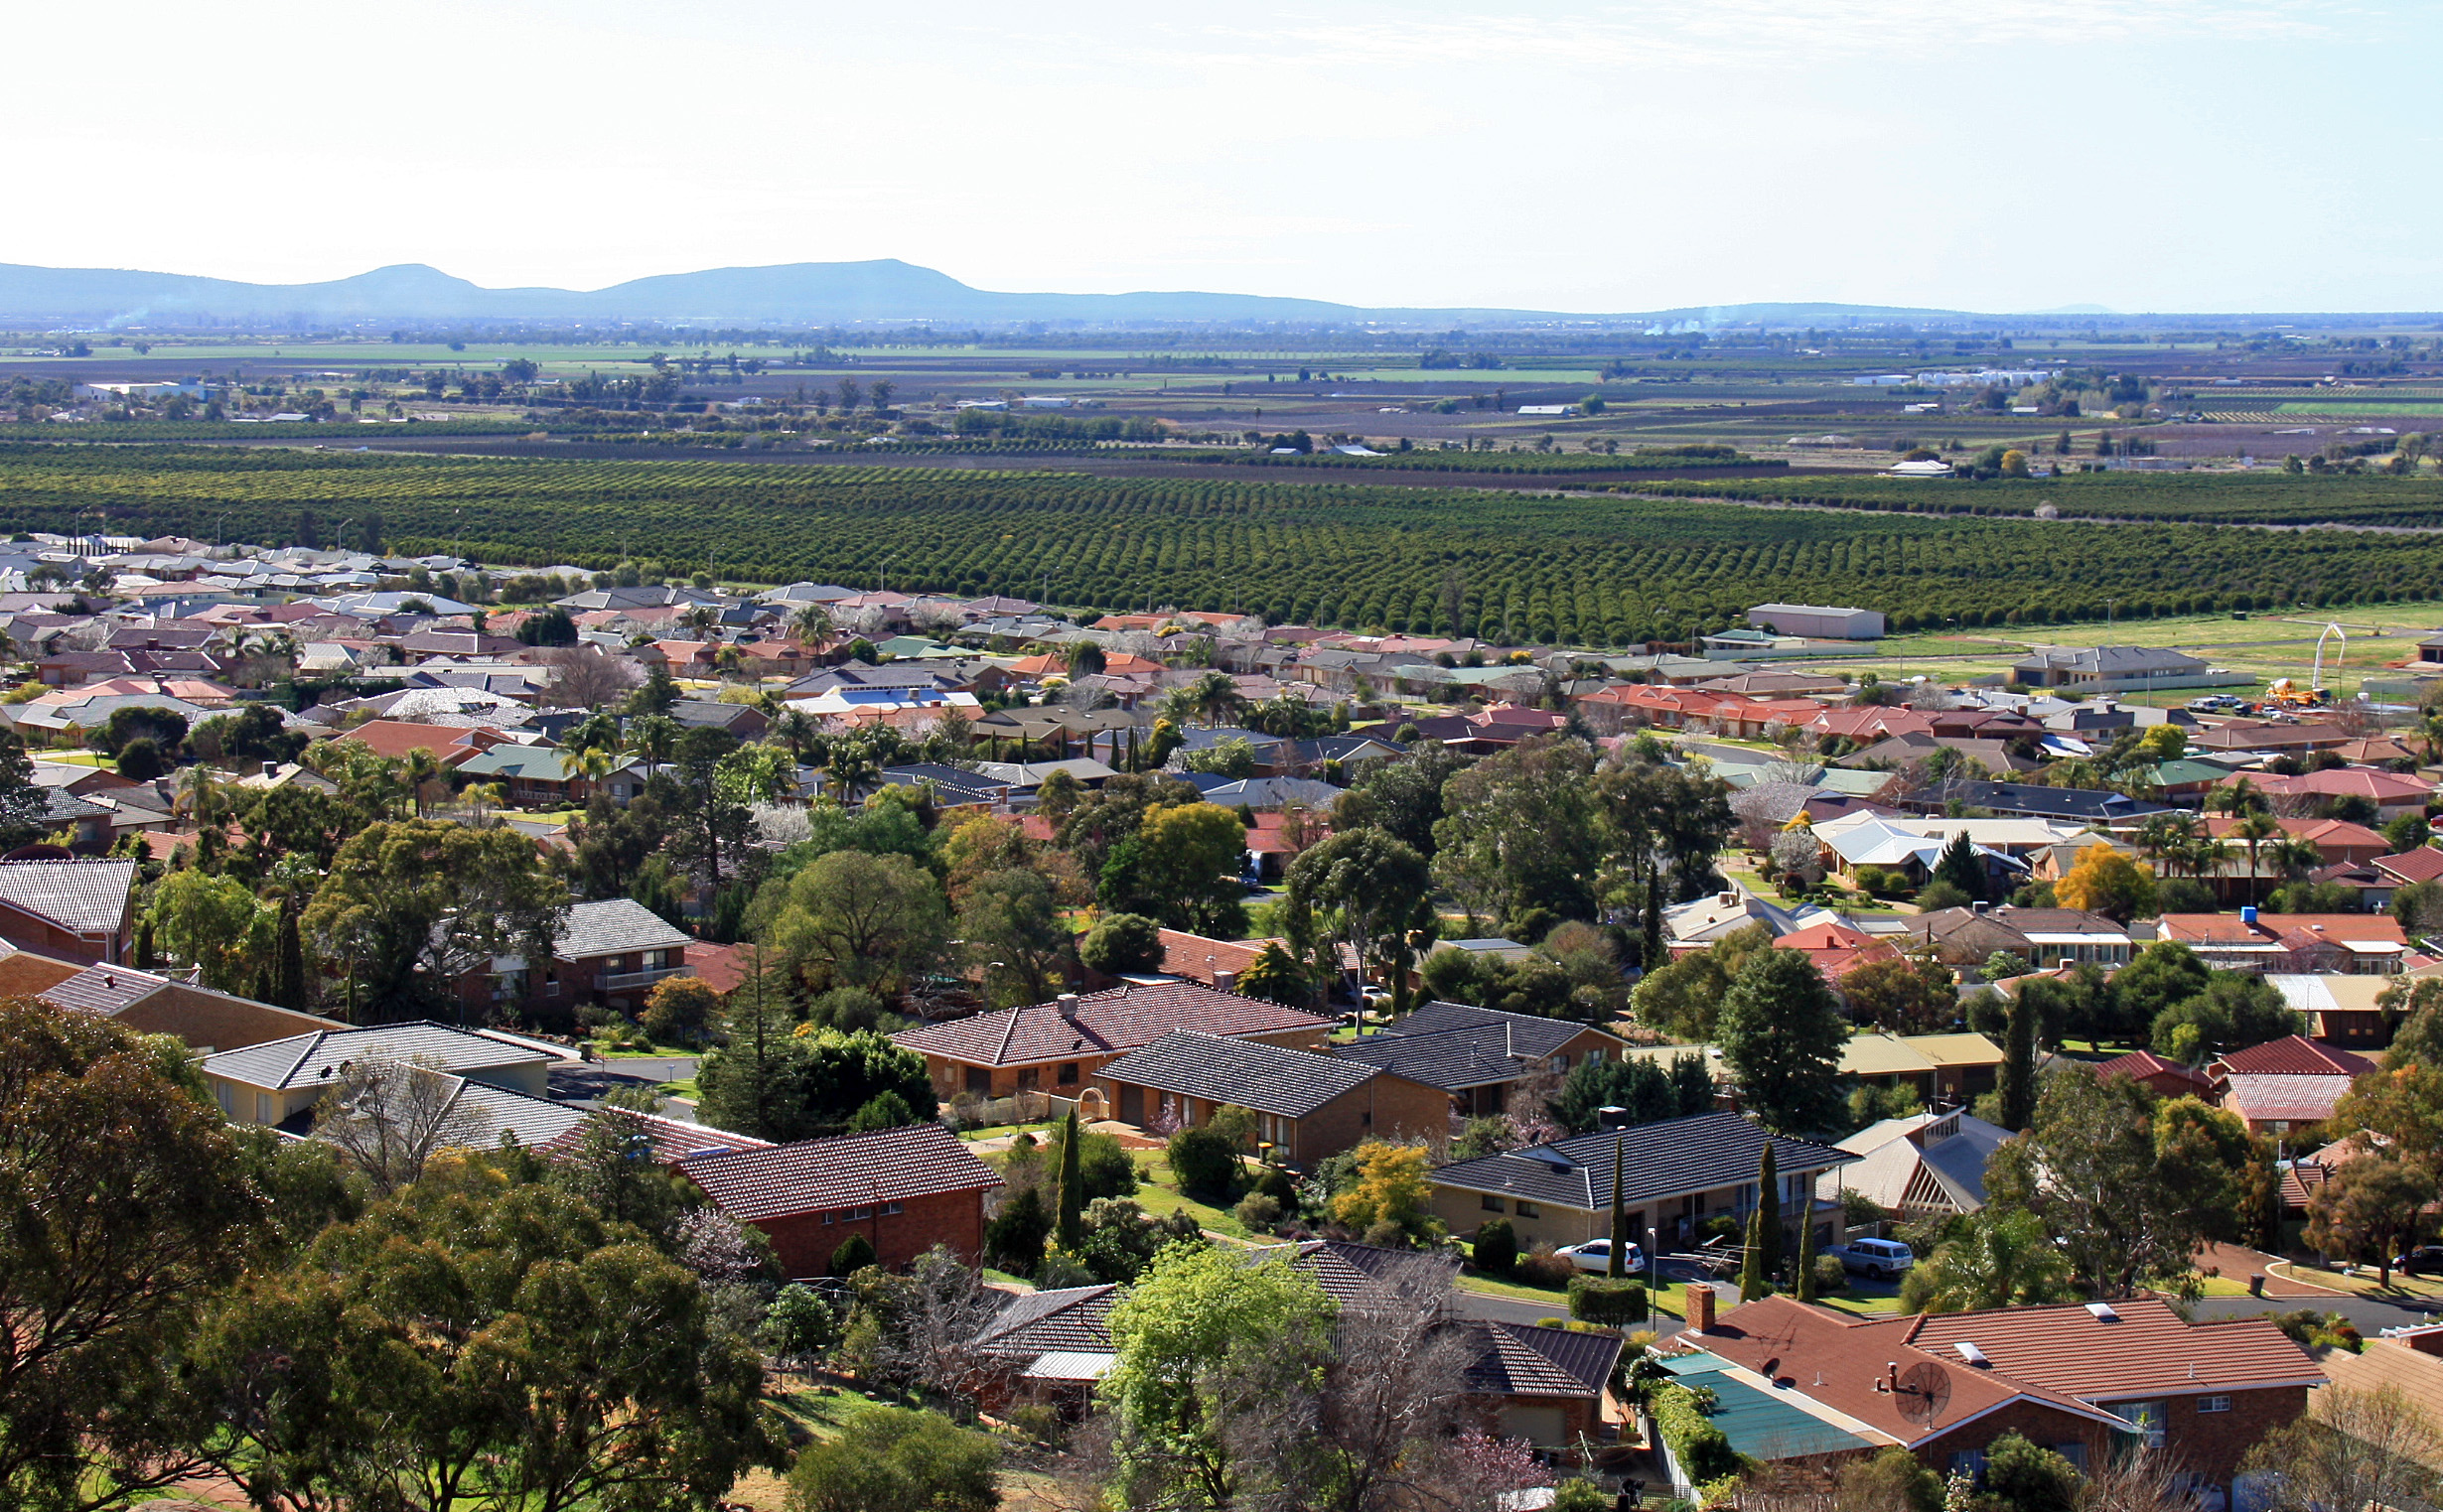 File:View over Griffith NSW 1 jpg - Wikimedia Commons